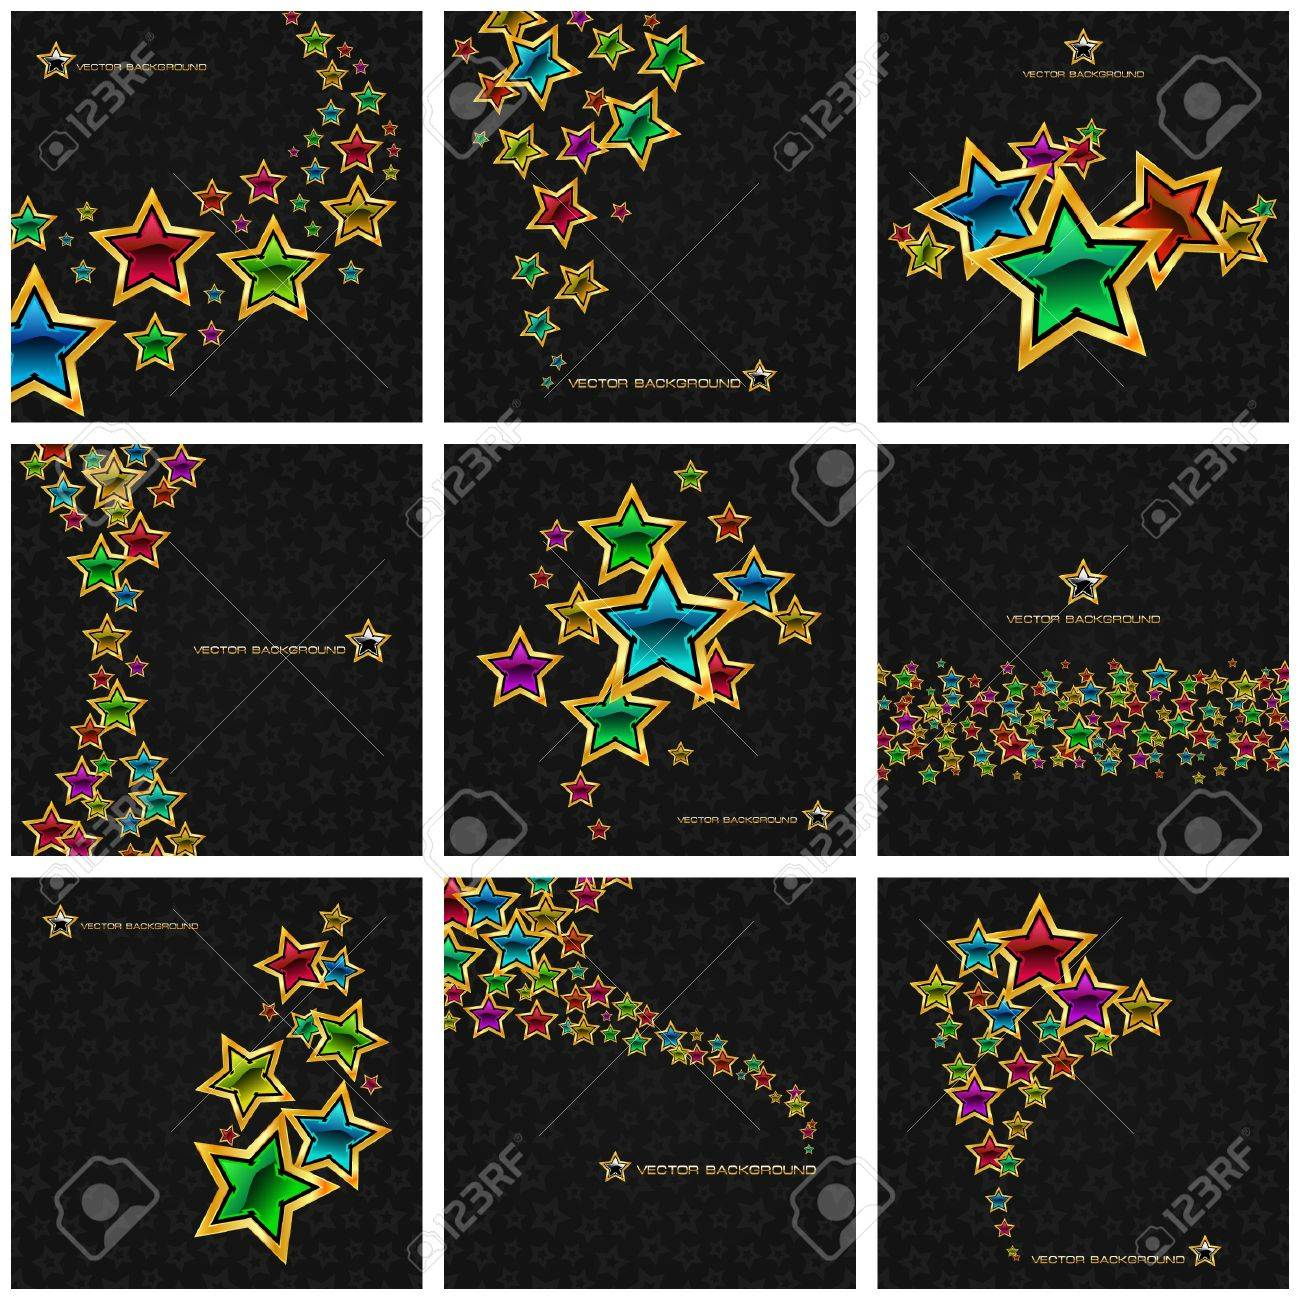 Abstract background with stars. Vector illustration. Stock Vector - 8890791